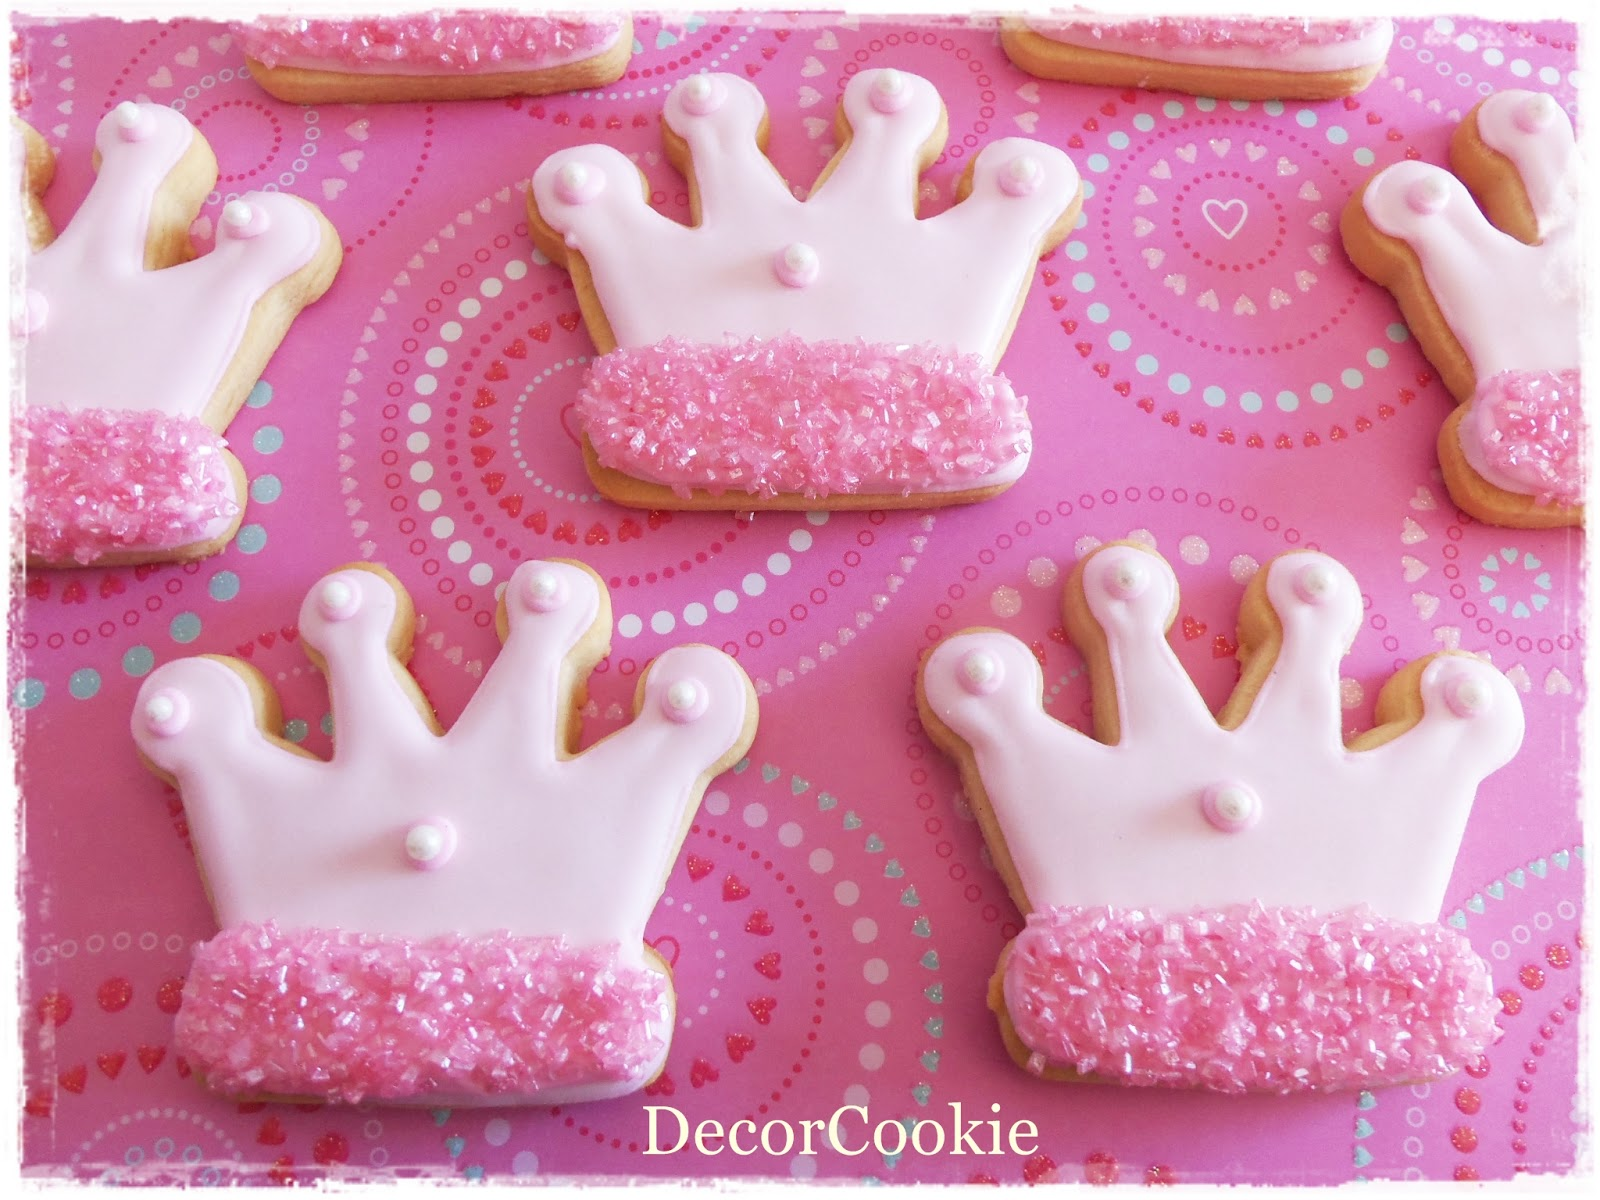 Galletas Decoradas De Princesas Galletas Decoradas Decorcookie Galletas Para Princesas